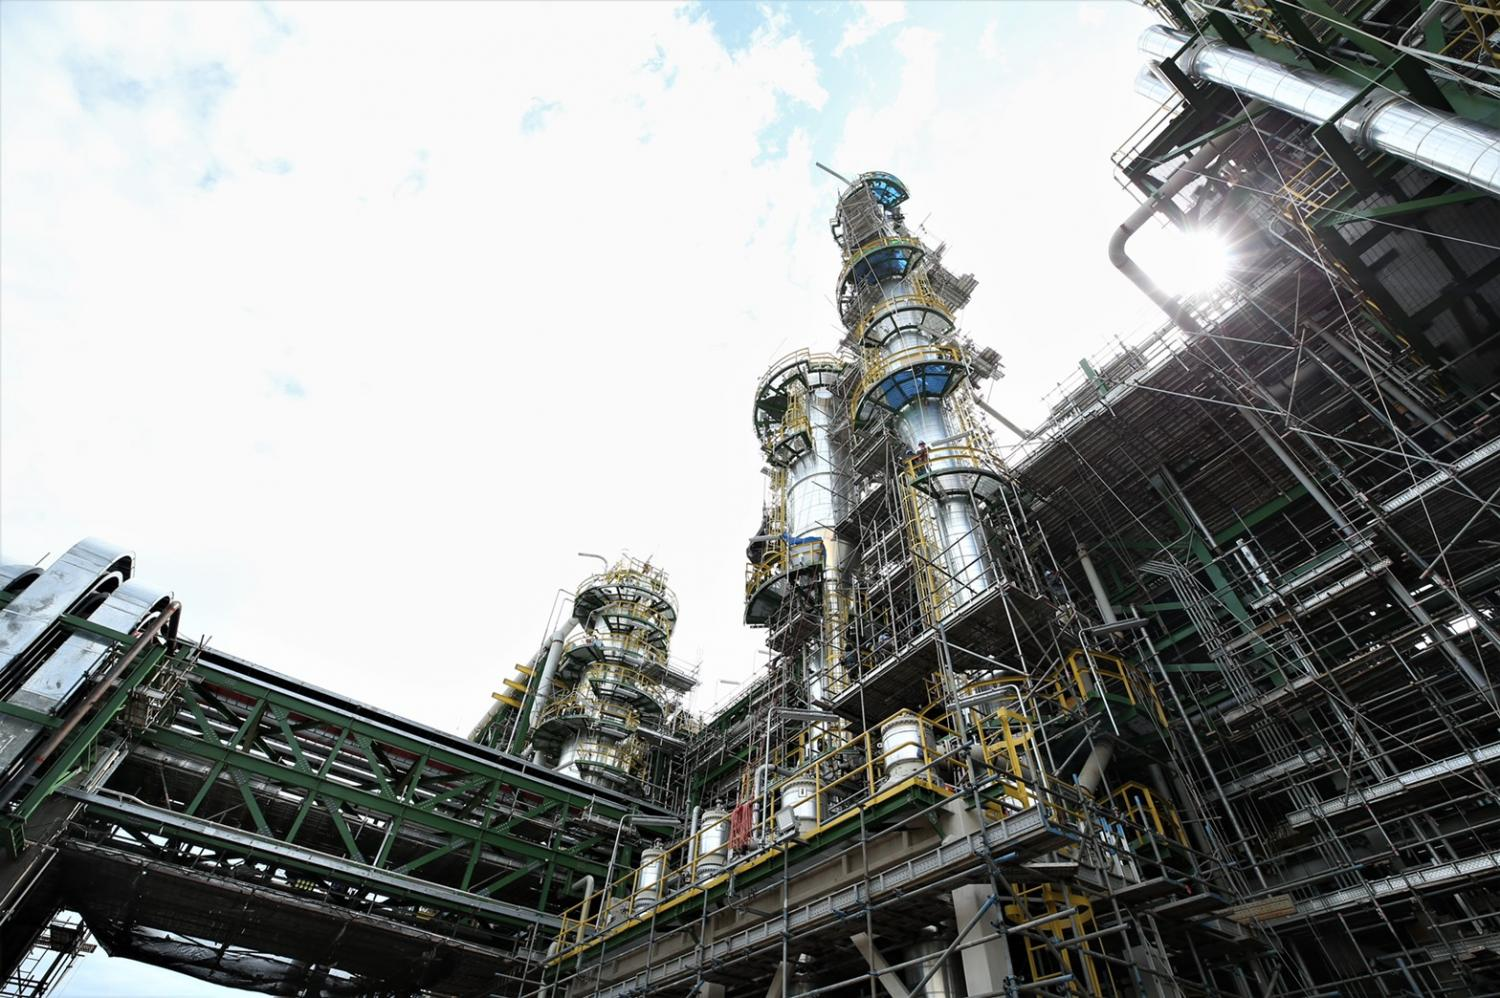 Among PTTGC's many new outlays are its olefins reconfiguration project and downstream projects, expected to be operational soon.